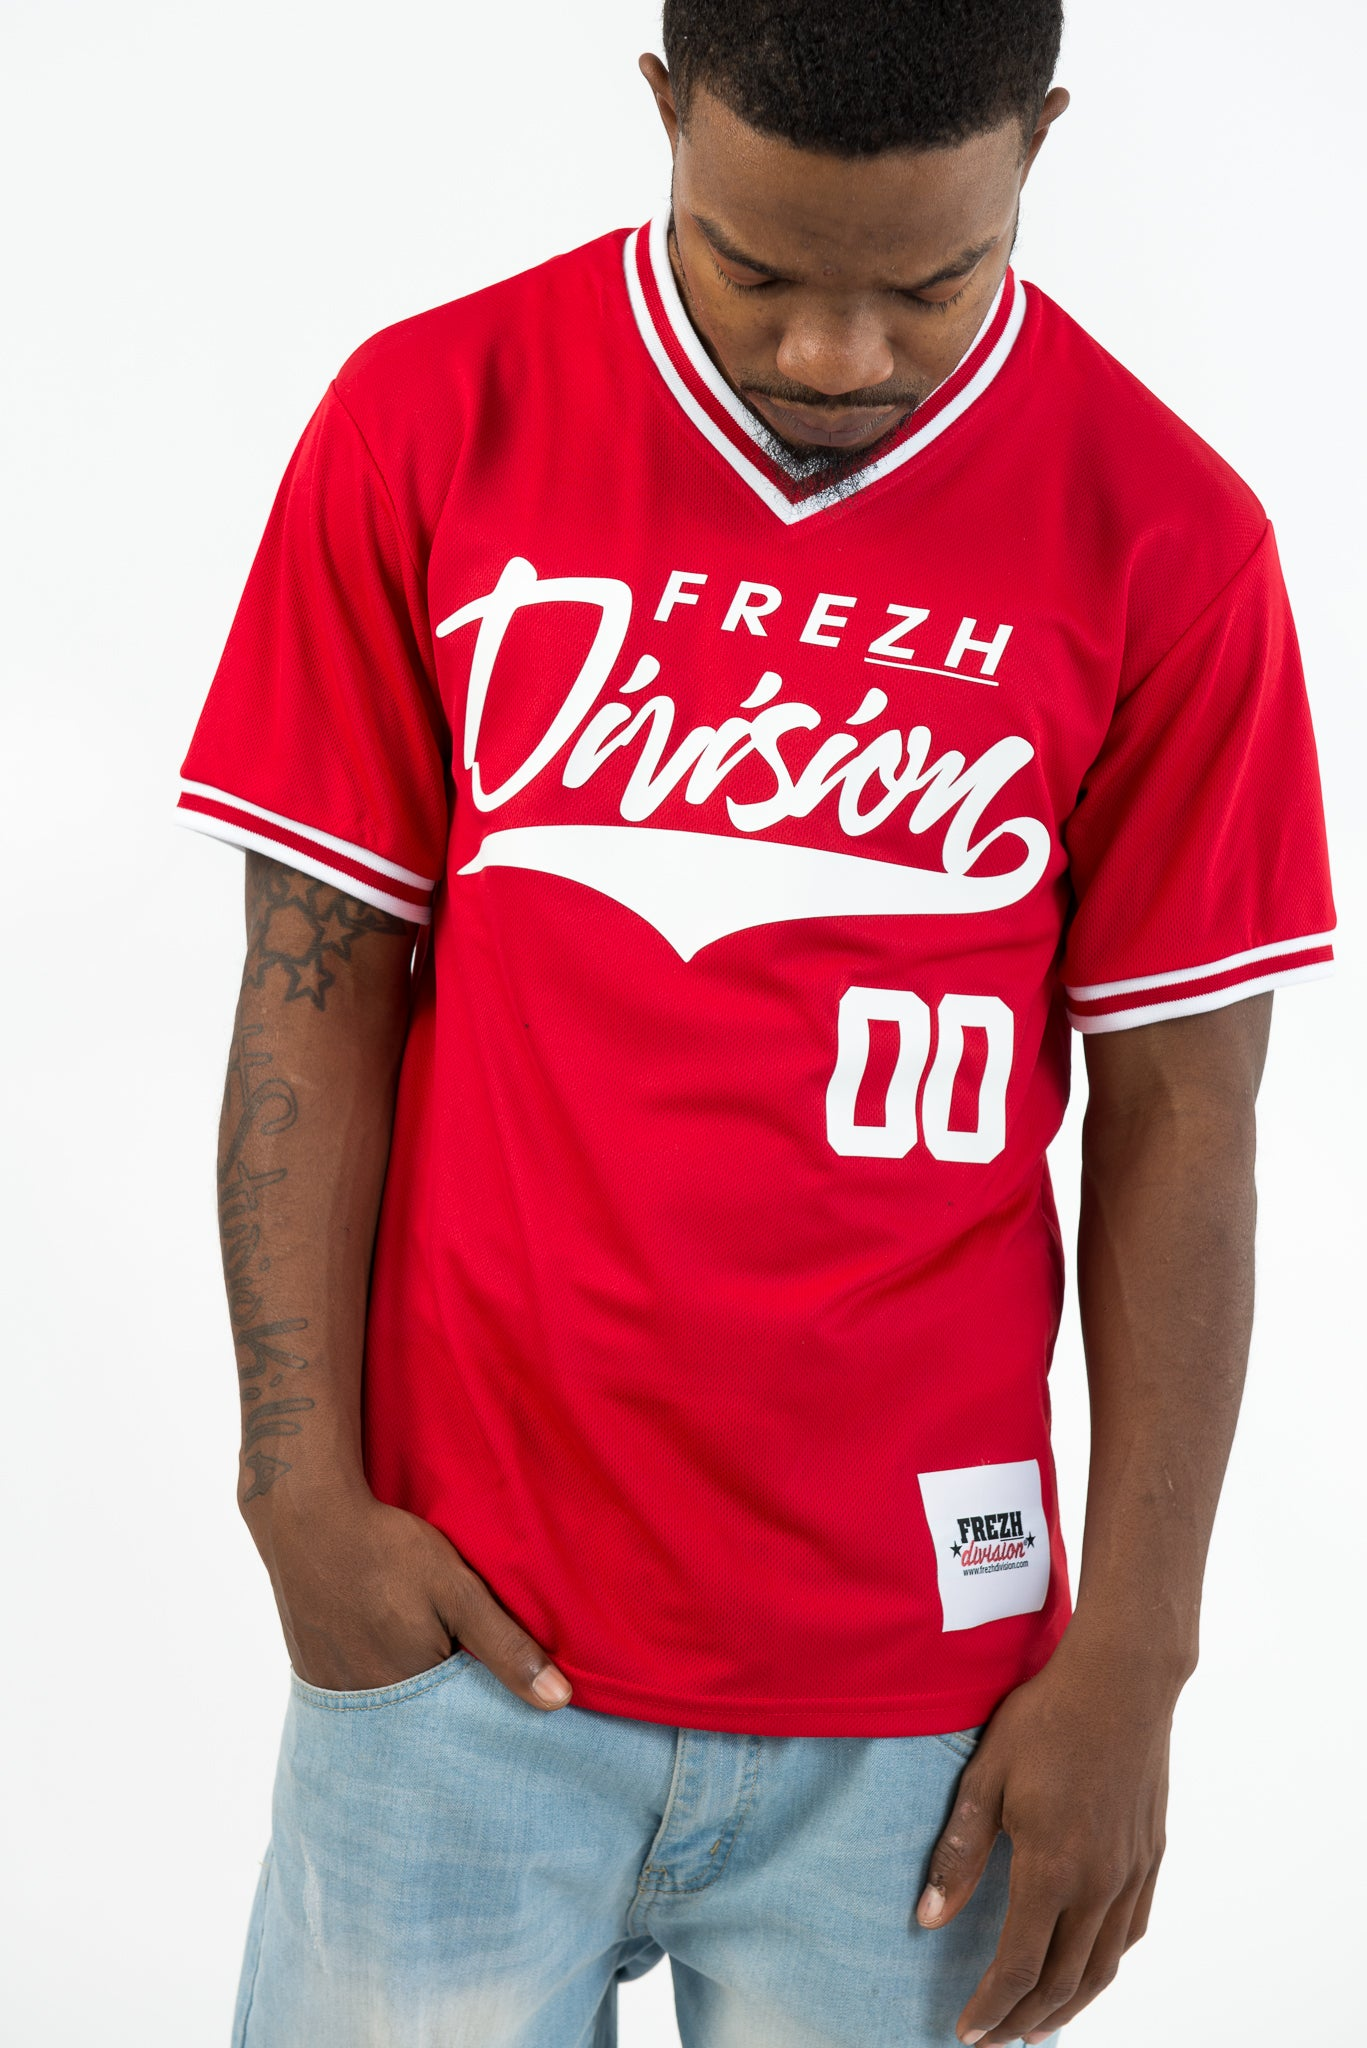 FREZH DIVISION JERSEY